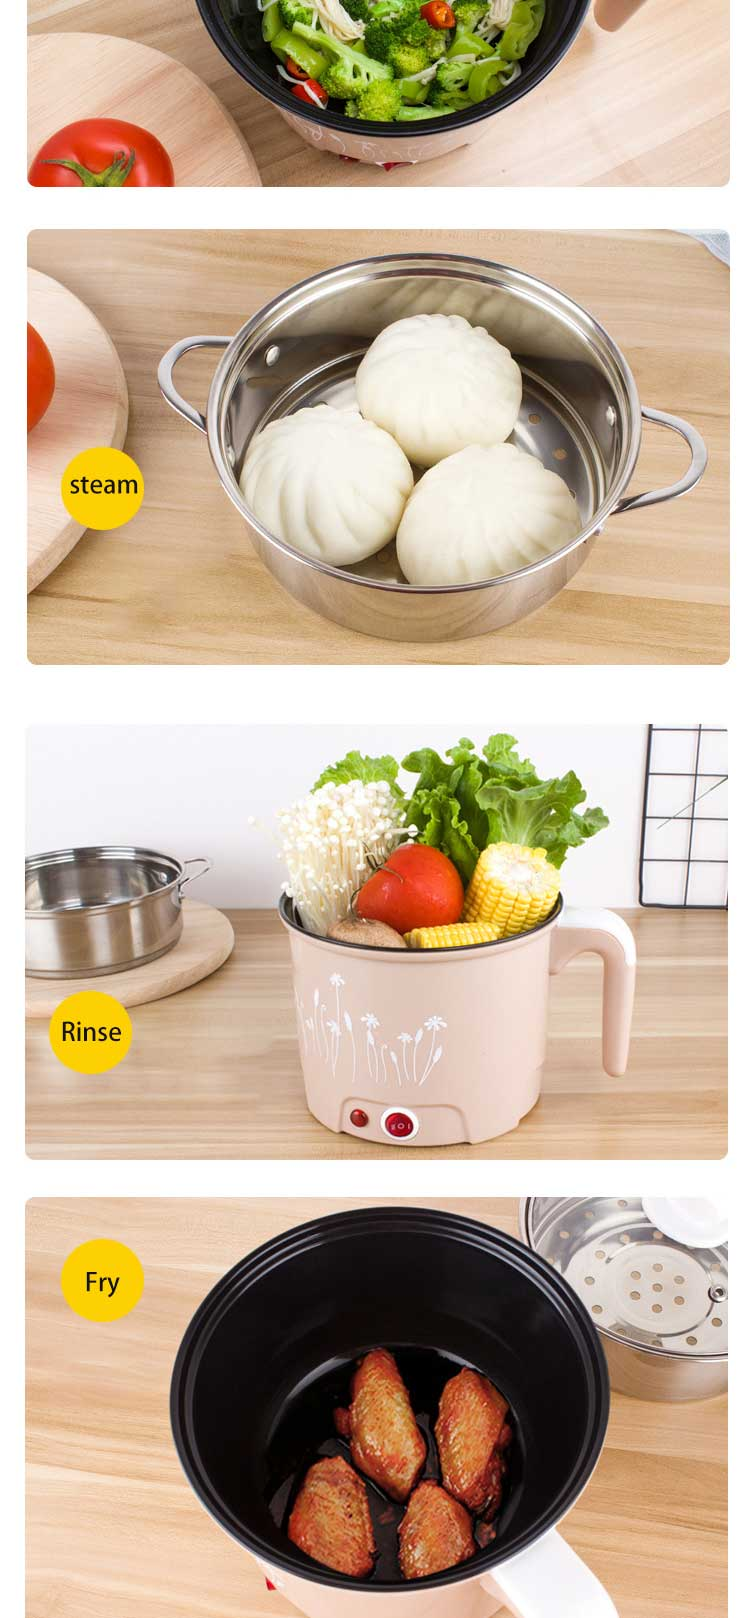 Mini stainless steel electric cooker, electric cooker, 1.8L, kitchen appliance with steamer